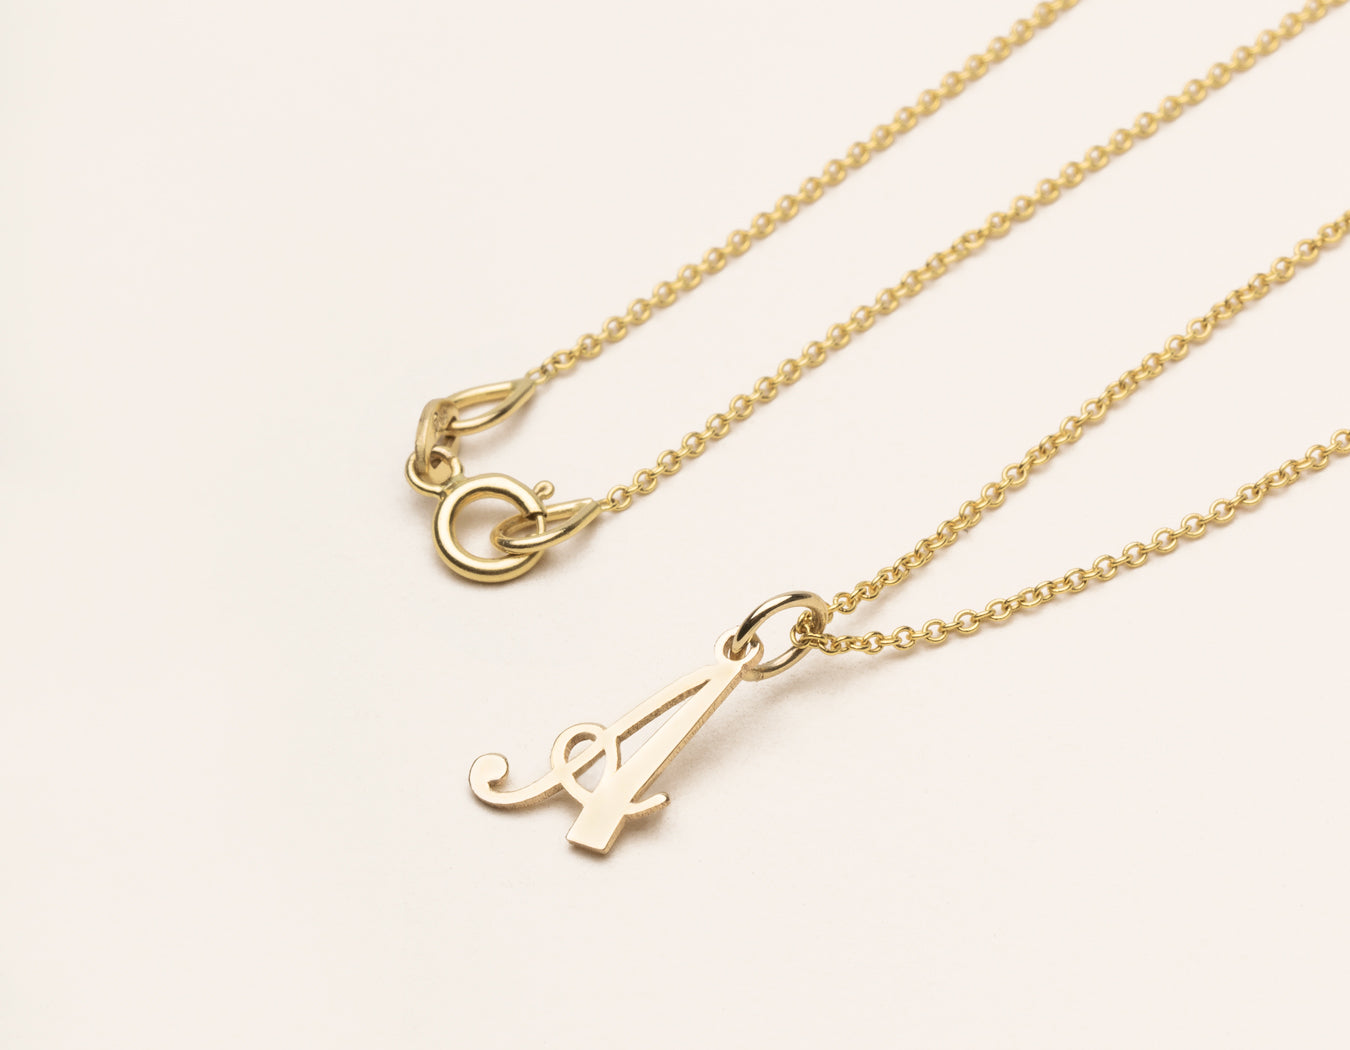 Vrai and Oro simple classic 14k Solid Gold Letter Pendant charm on oval link chain, 14K Yellow Gold